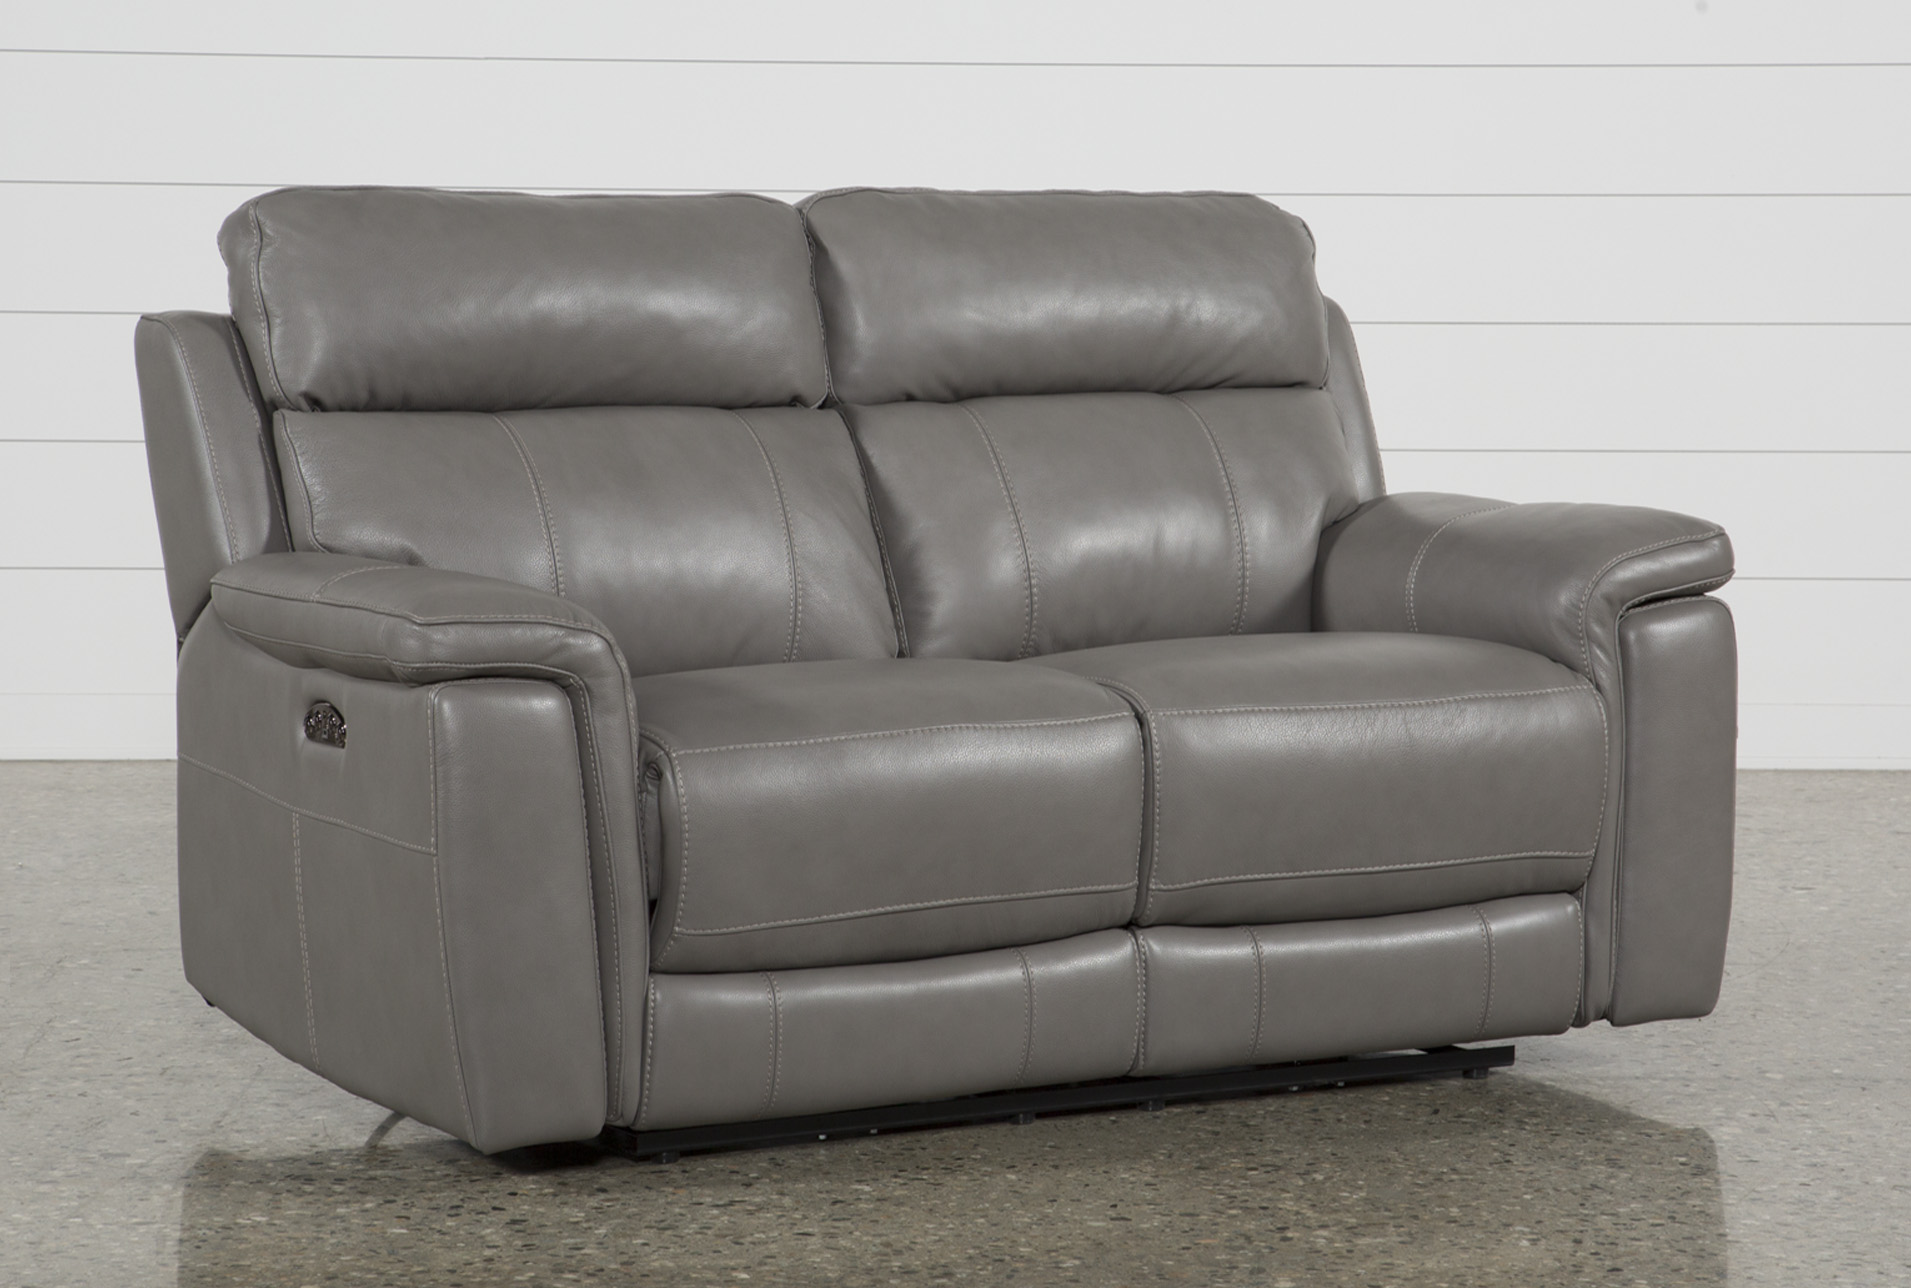 Dino Grey Leather Power Reclining Loveseat W/Power Headrest & Usb - 360